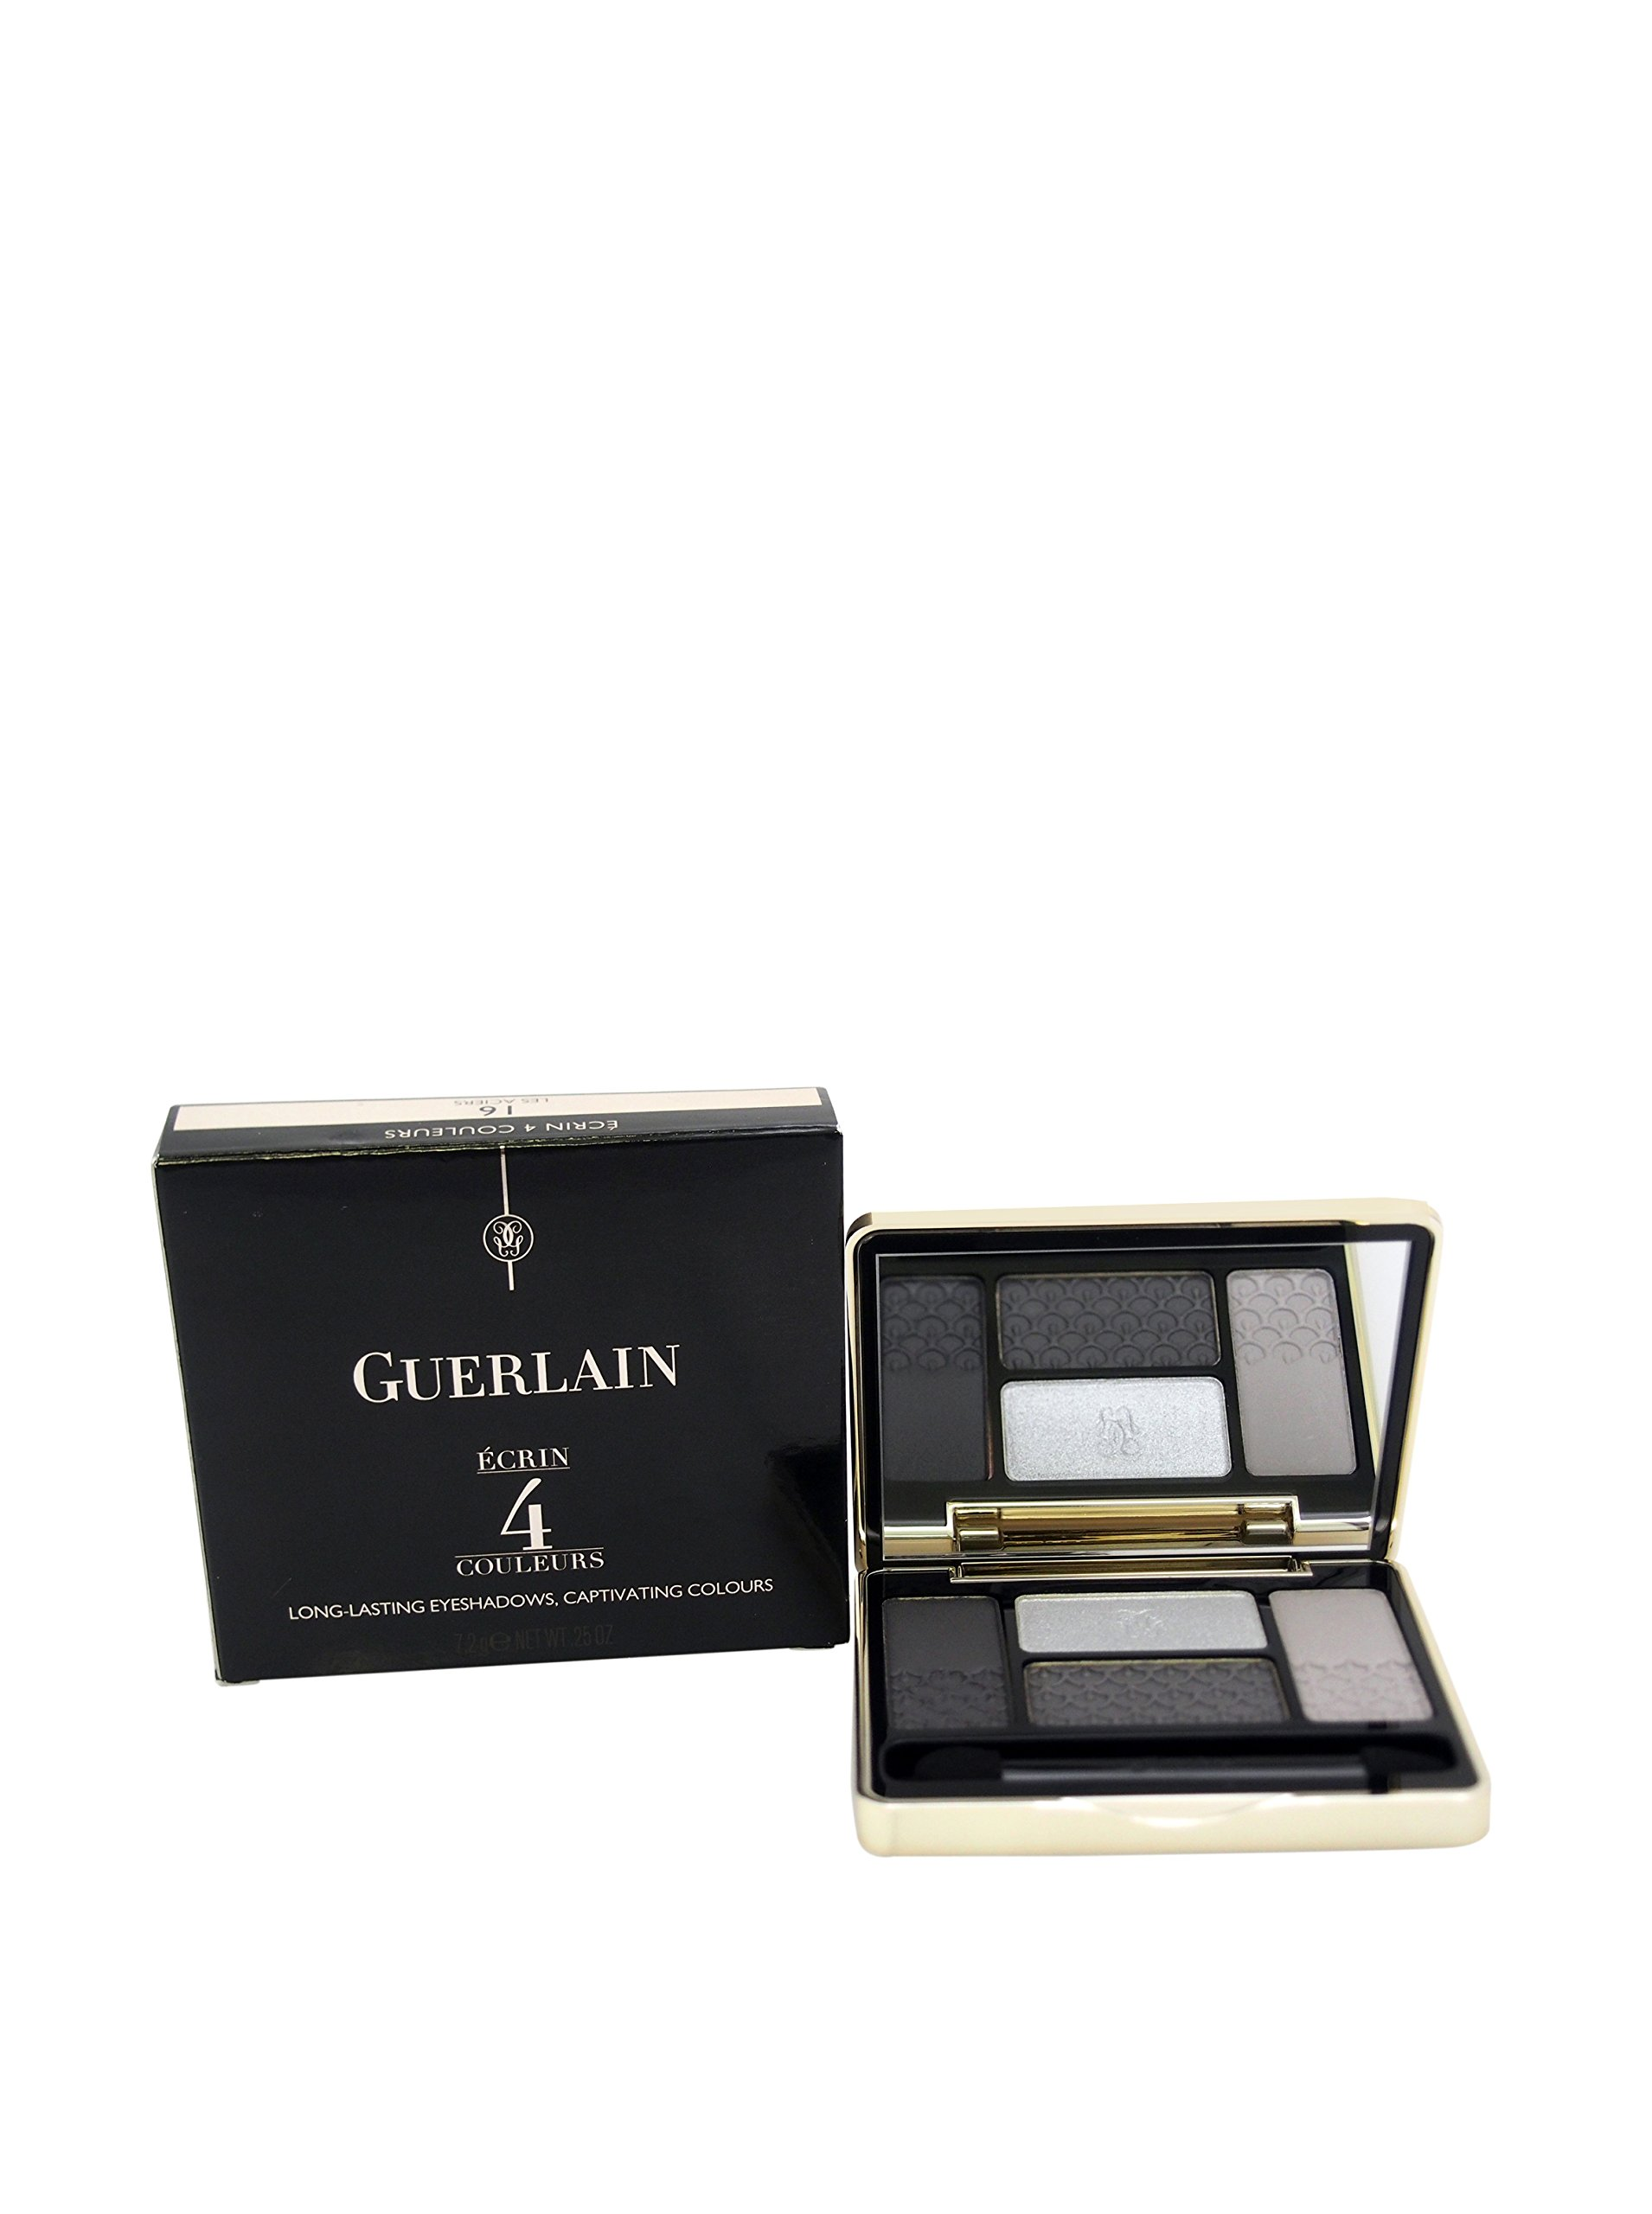 Guerlain Ecrin 4 Couleurs Eye Shadow for Women, Palette No. 16 Les Aciers, 0.25 Ounce